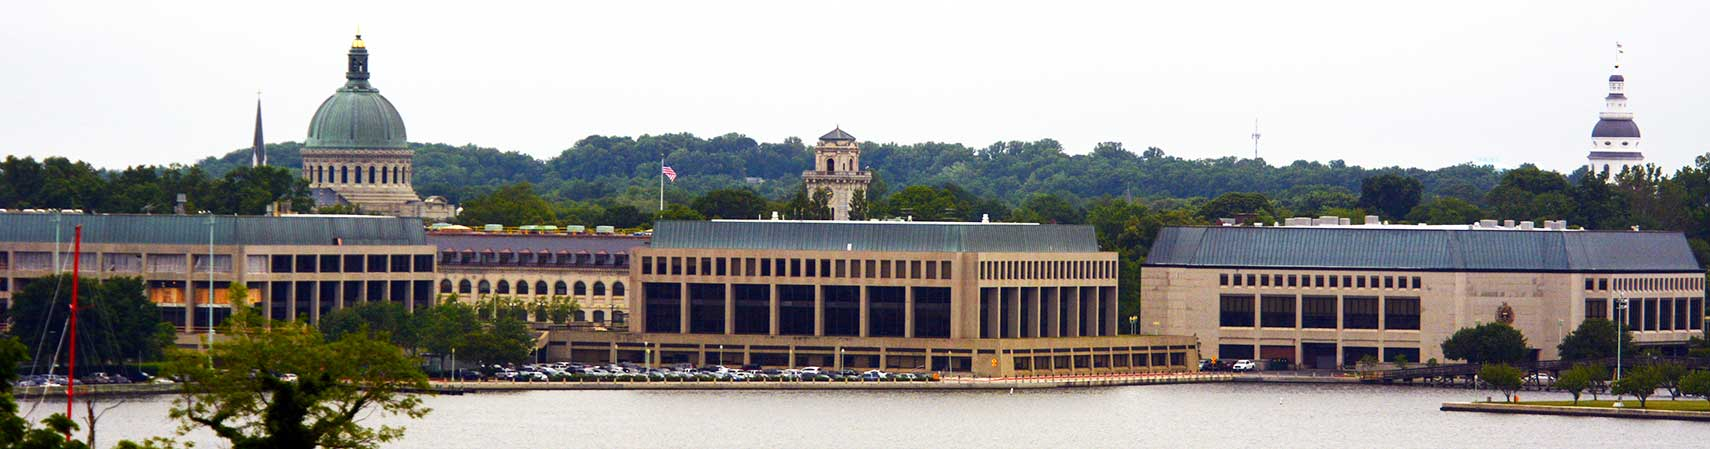 United States Naval Academy in Annapolis, Maryland